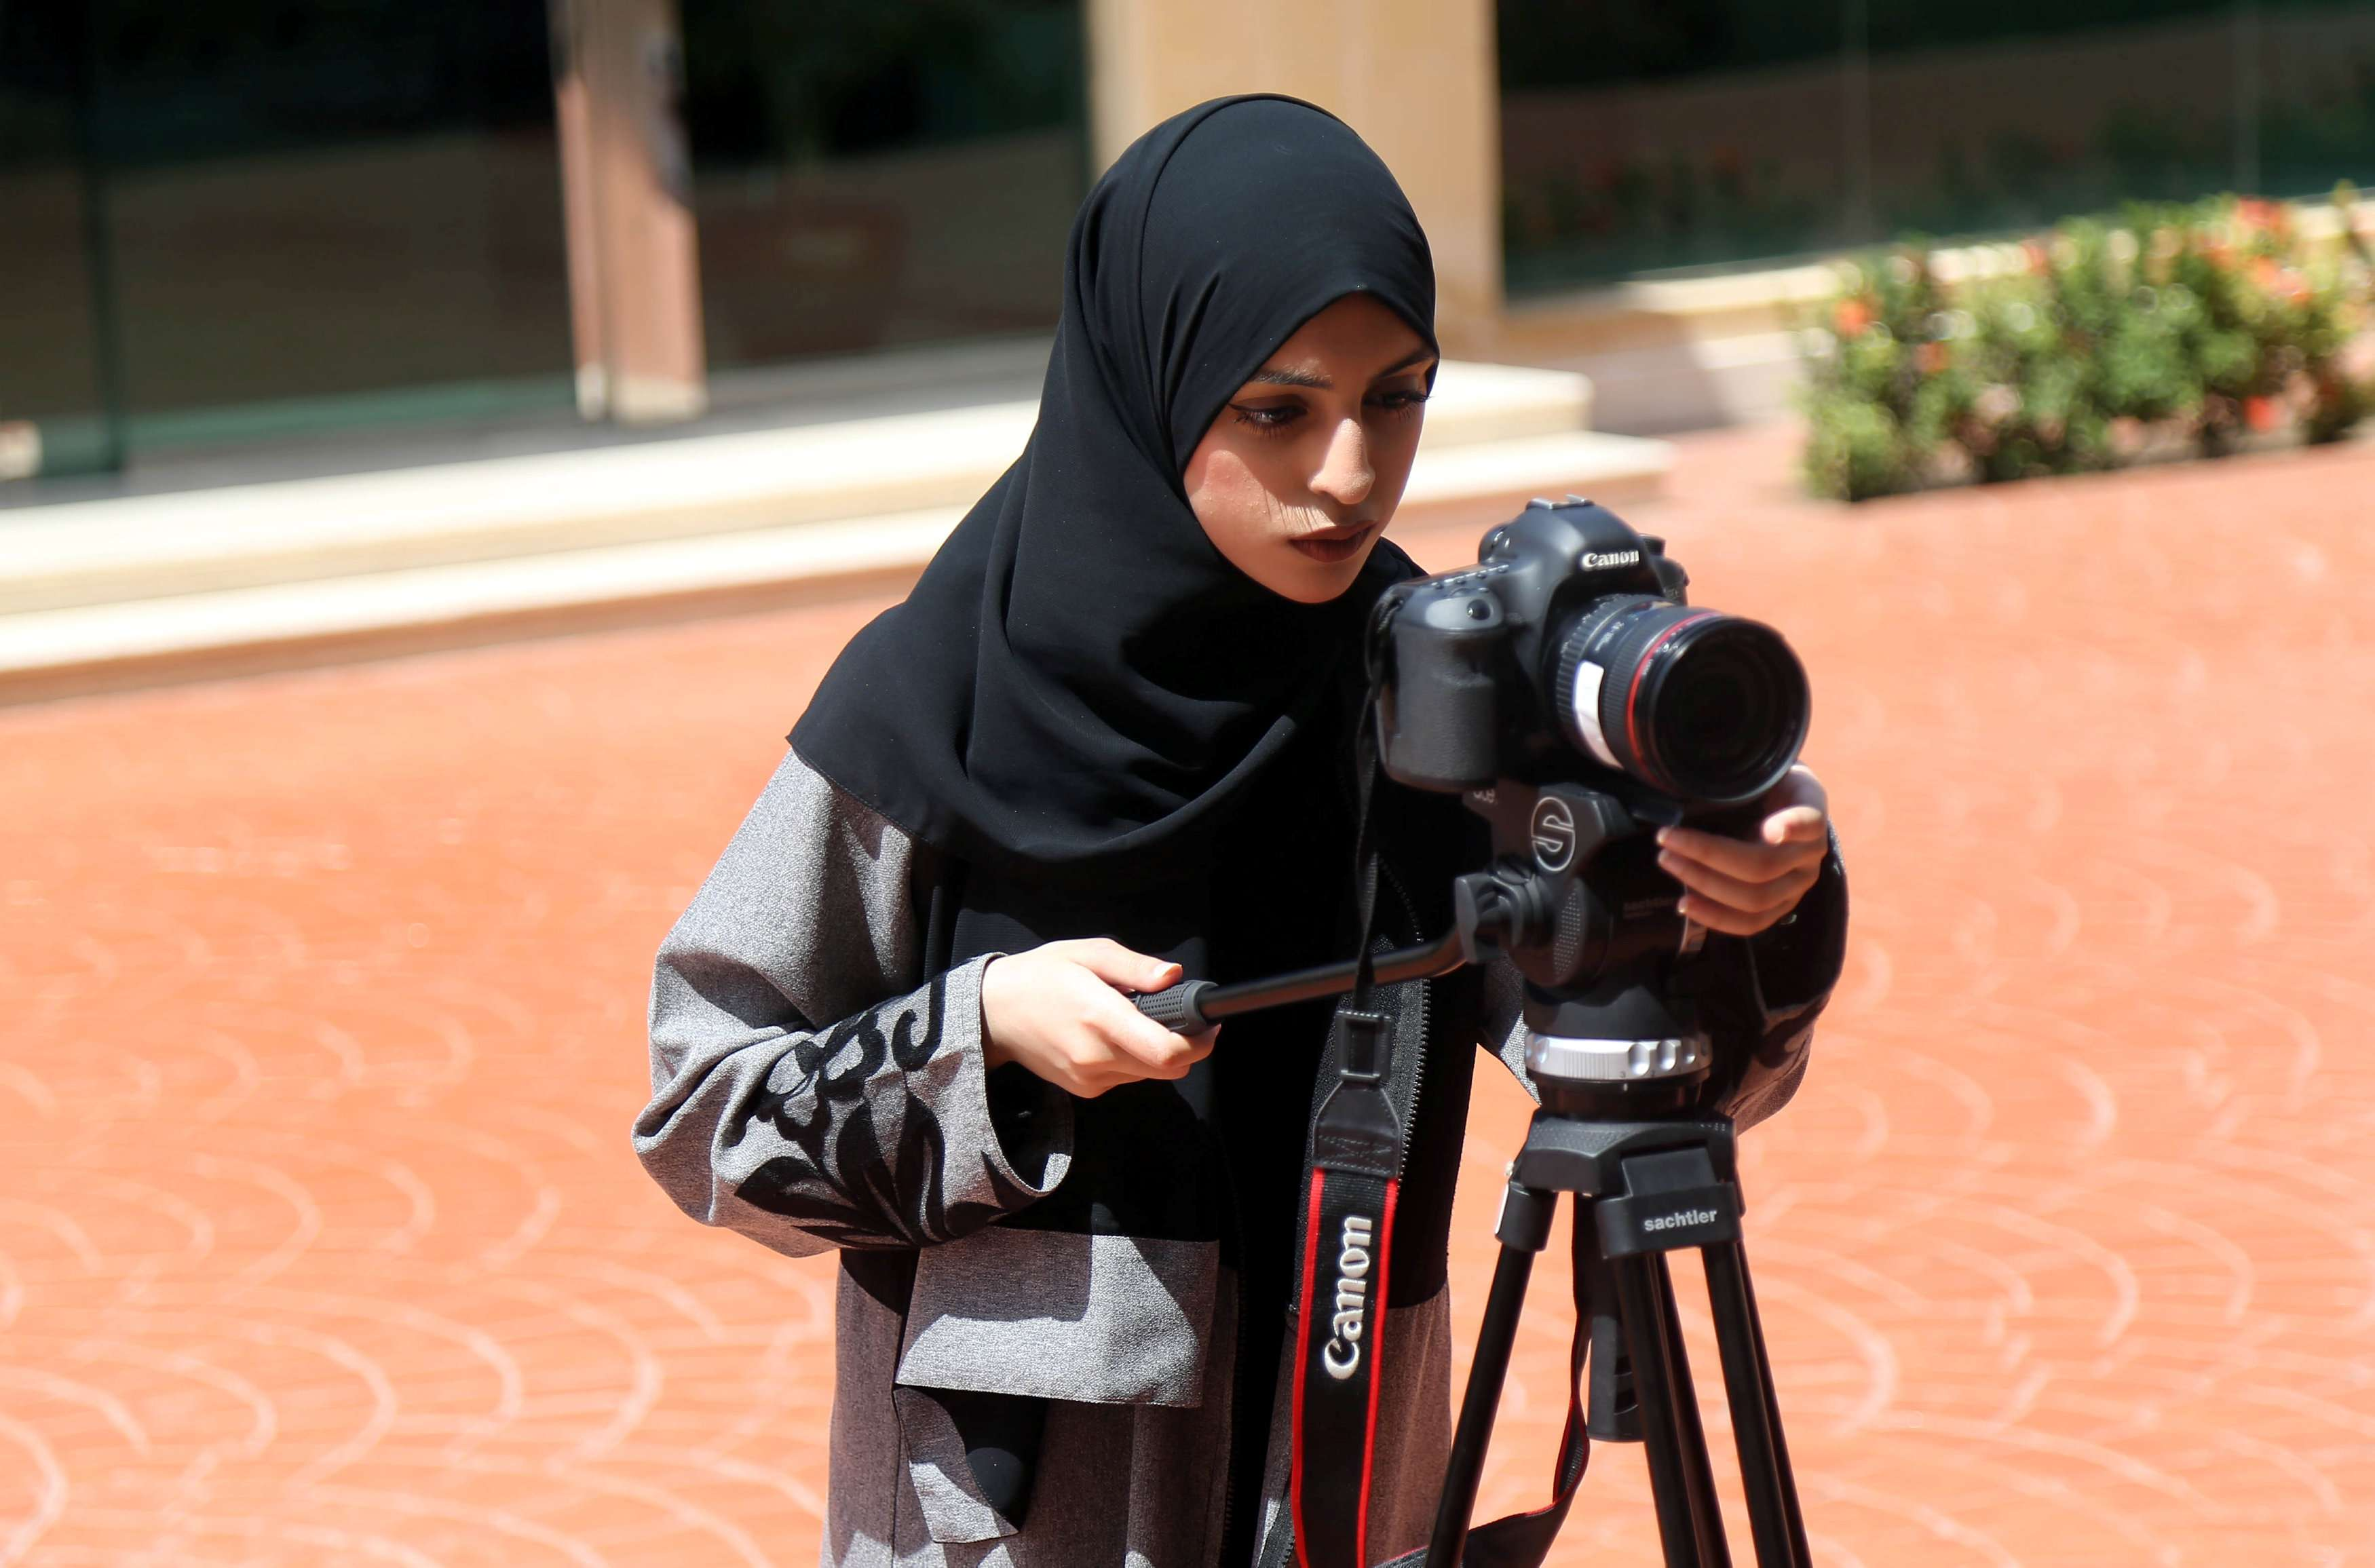 New opportunities. A Saudi woman aims a camera as she studies film-making at a university in Jeddah.      		                    (Reuters)